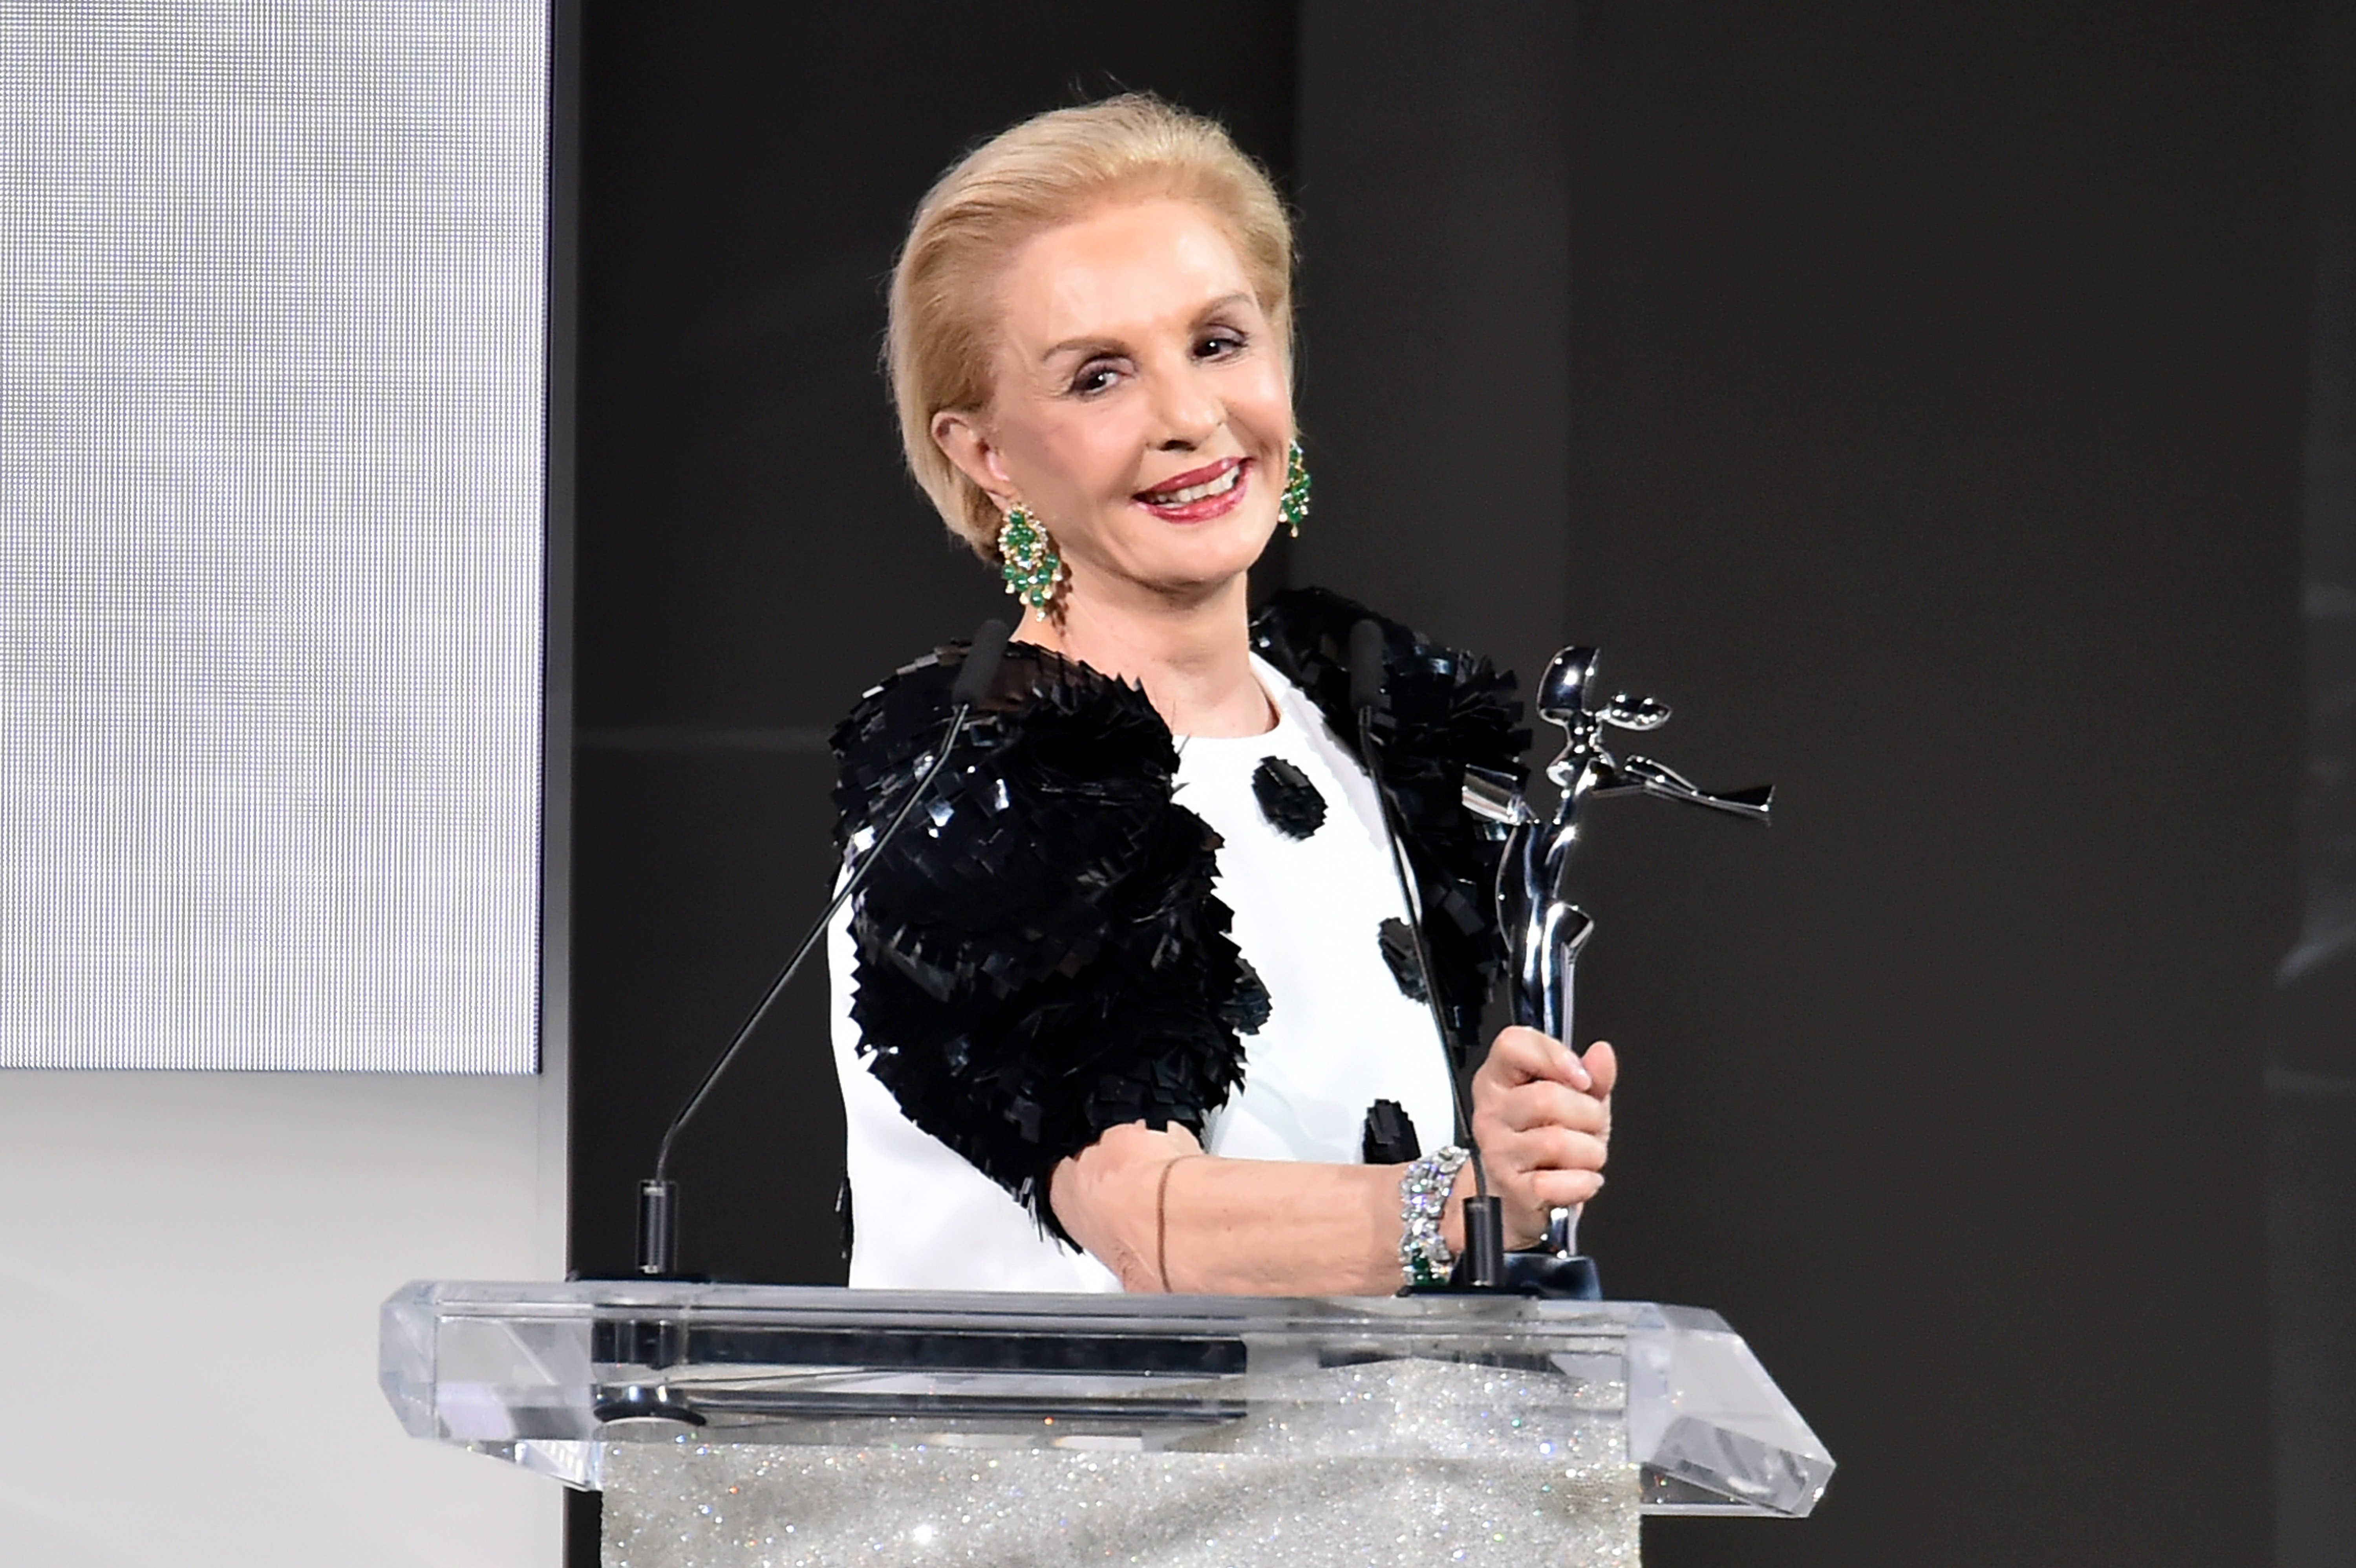 Carolina Herrera aceptando el Premio CFDA Founders 2018 en los CFDA Fashion Awards 2018 en Brooklyn, Nueva York || Foto: Getty Images